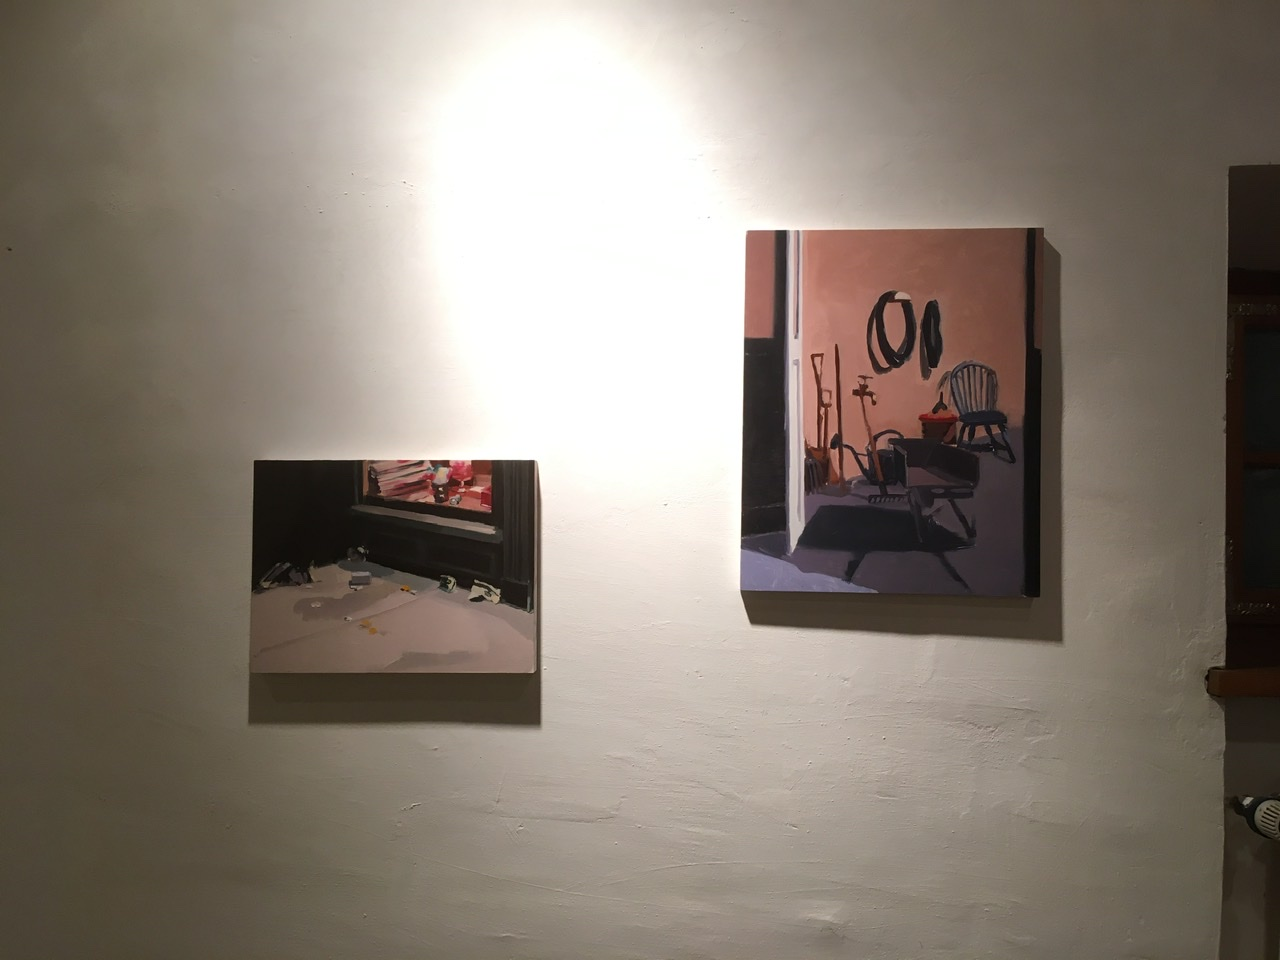 Neue Galerie Landshut, Figments and Clues, 2020